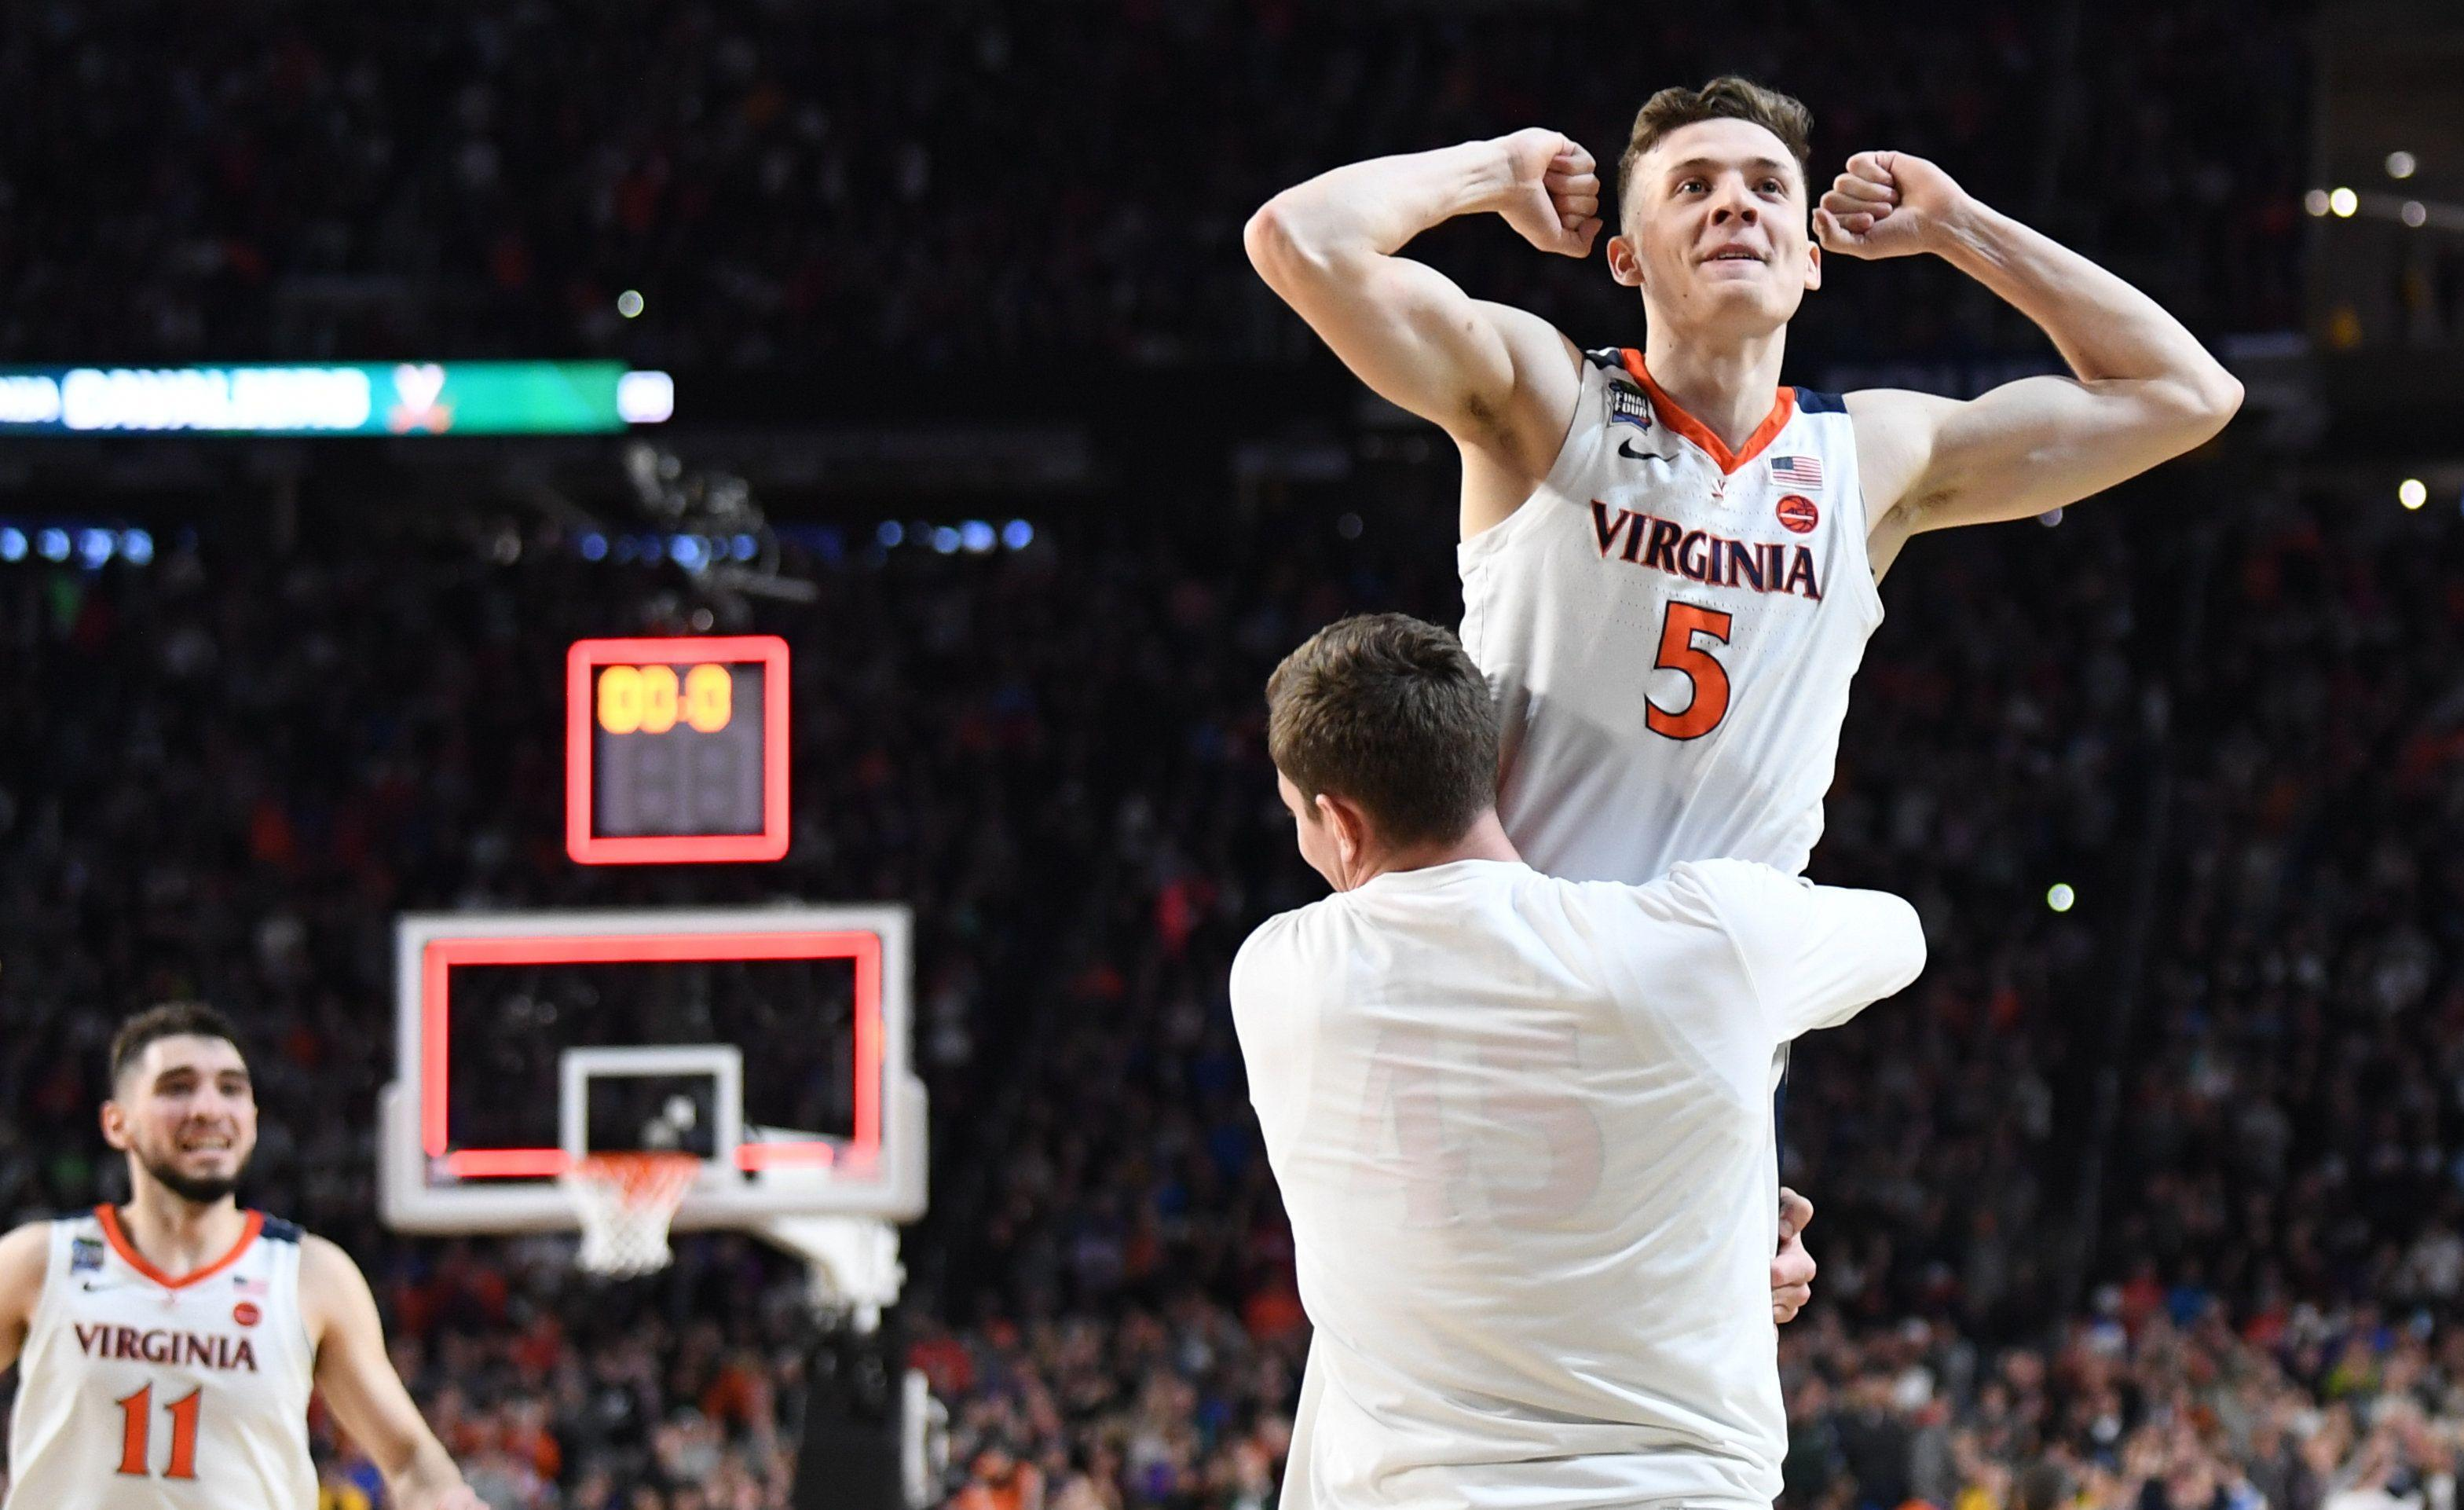 One year after historic loss, drama-addicted Virginia has willed itself to title game